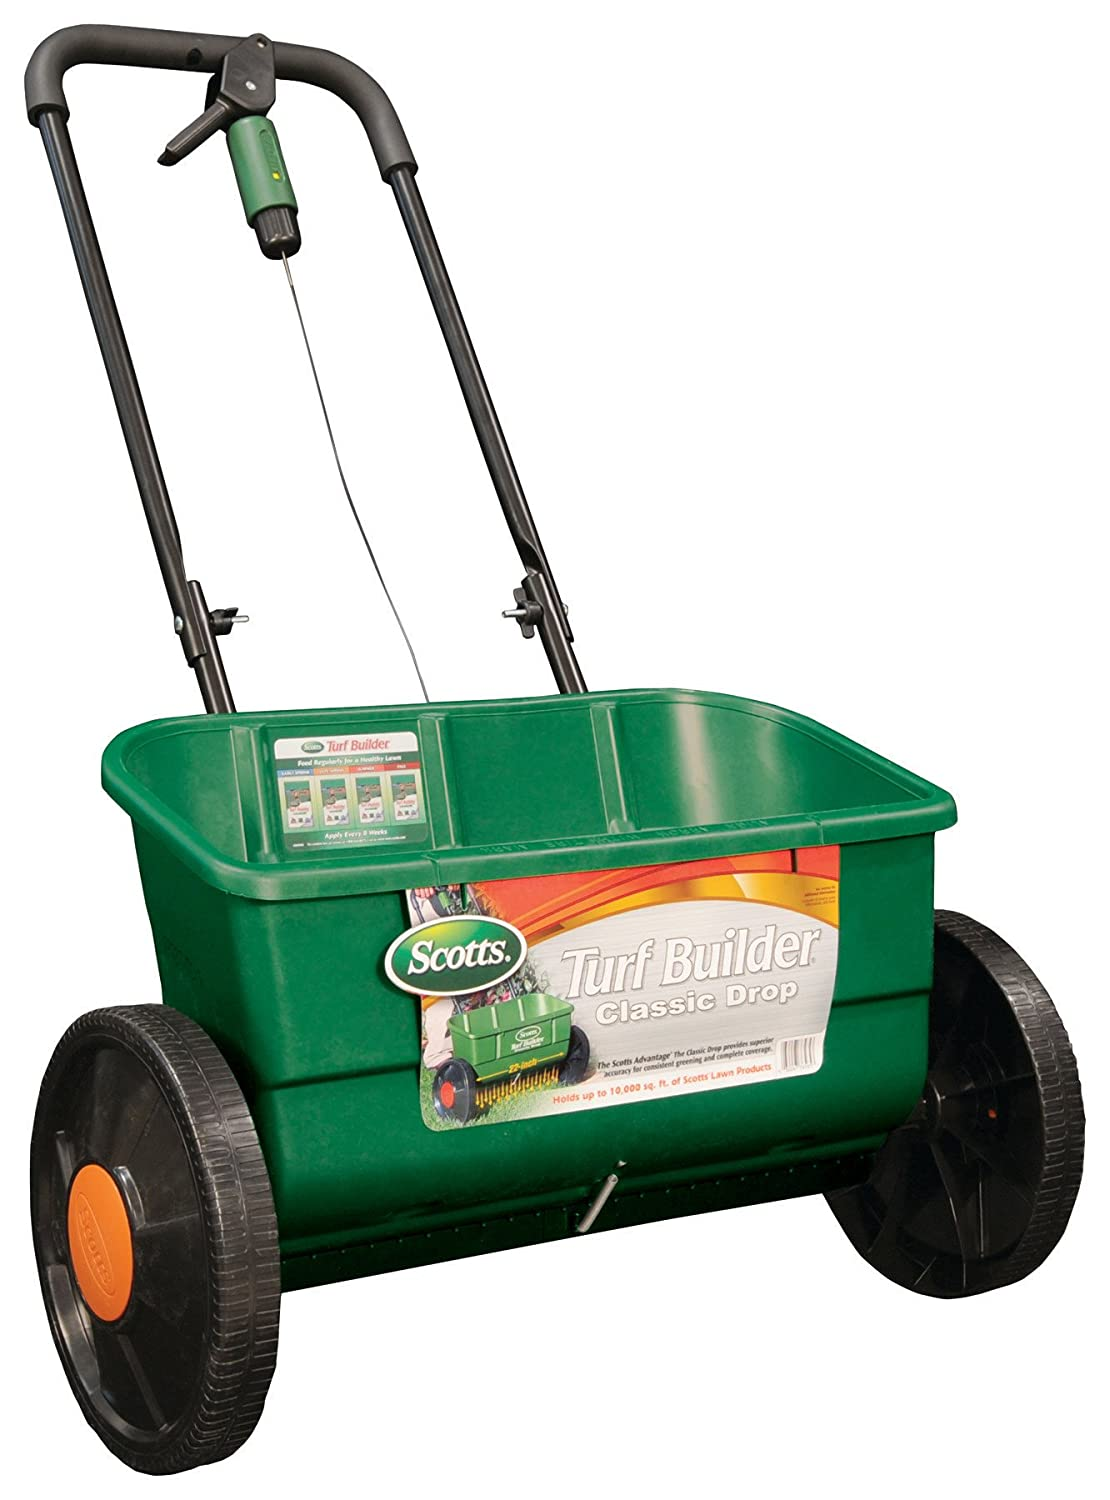 Scotts Turf Builder's Classic Drop Spreader